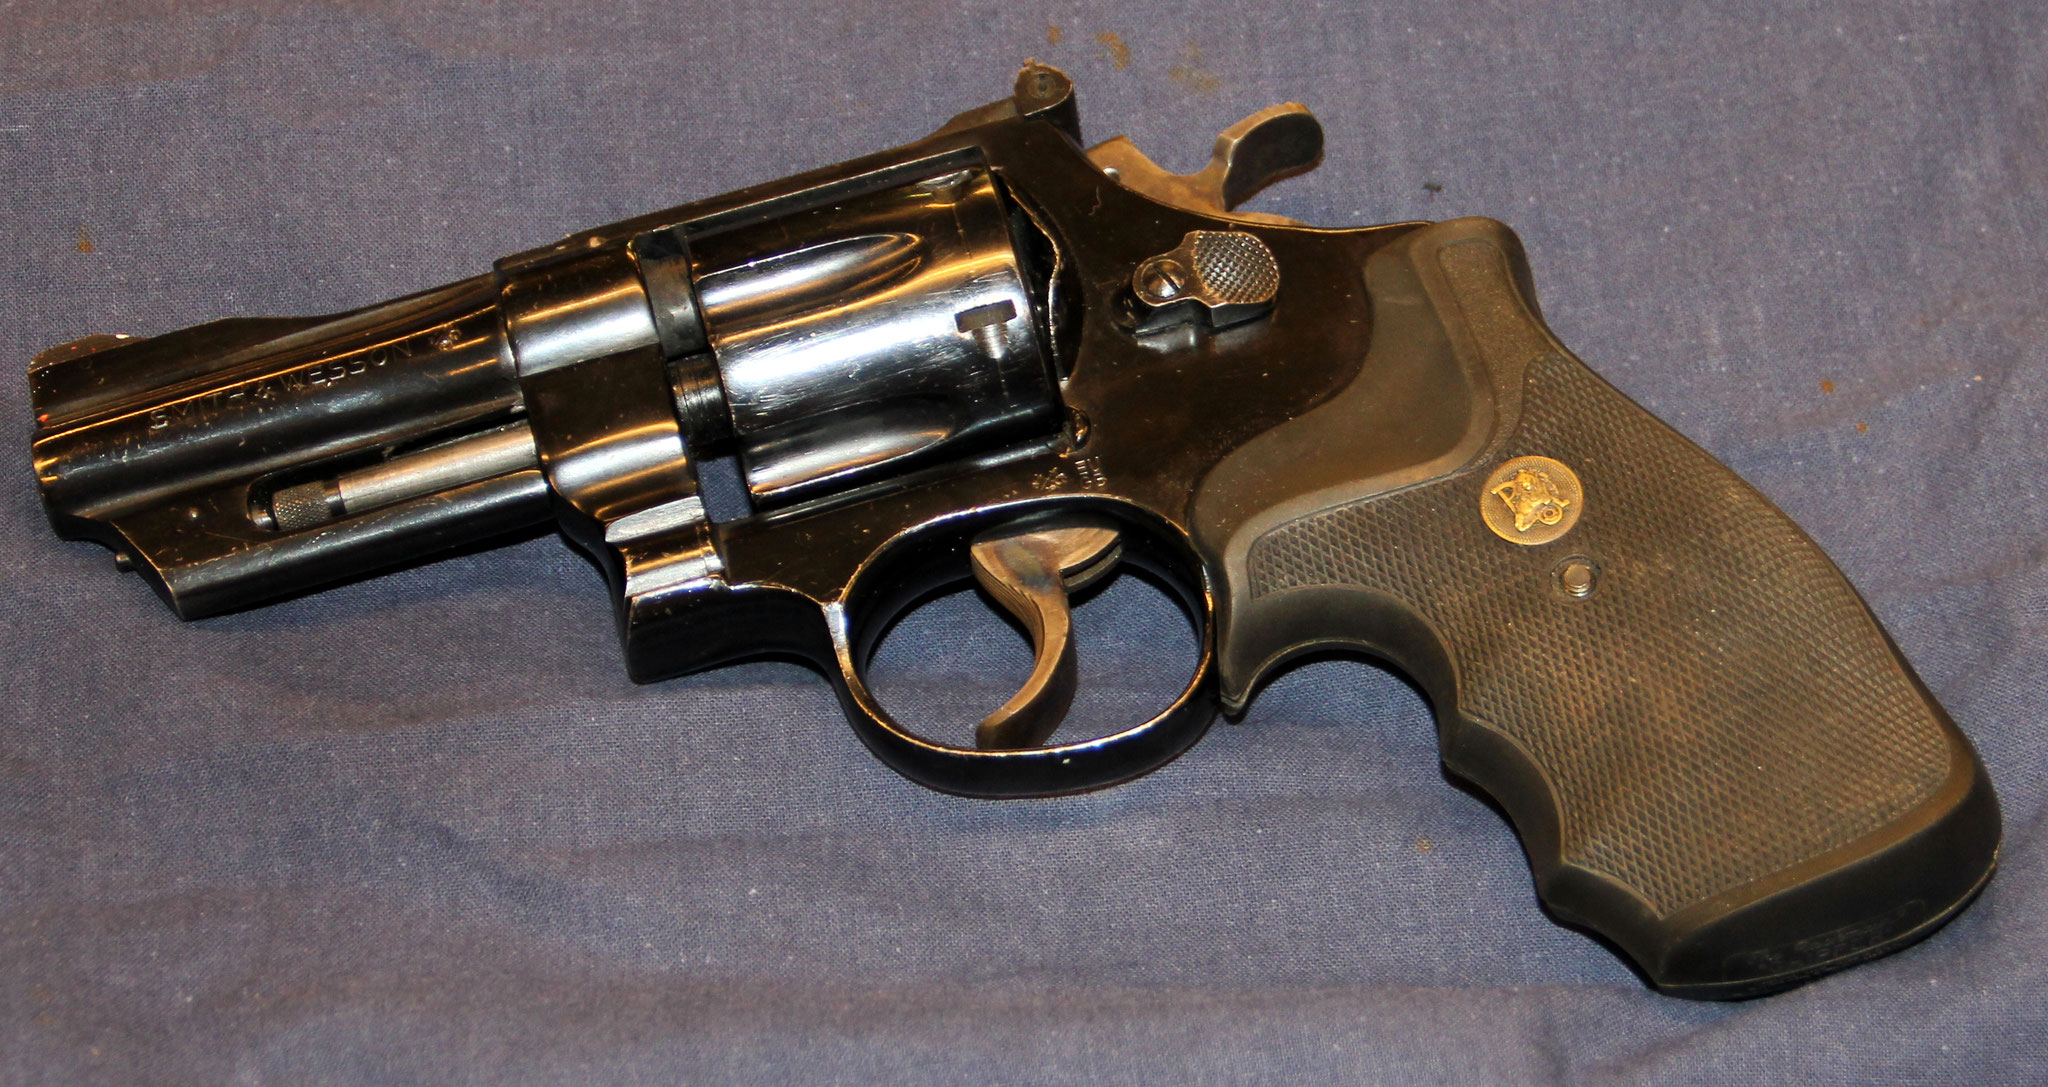 Smith & Wesson model 27-2. Cert.no. 122 € 550,-